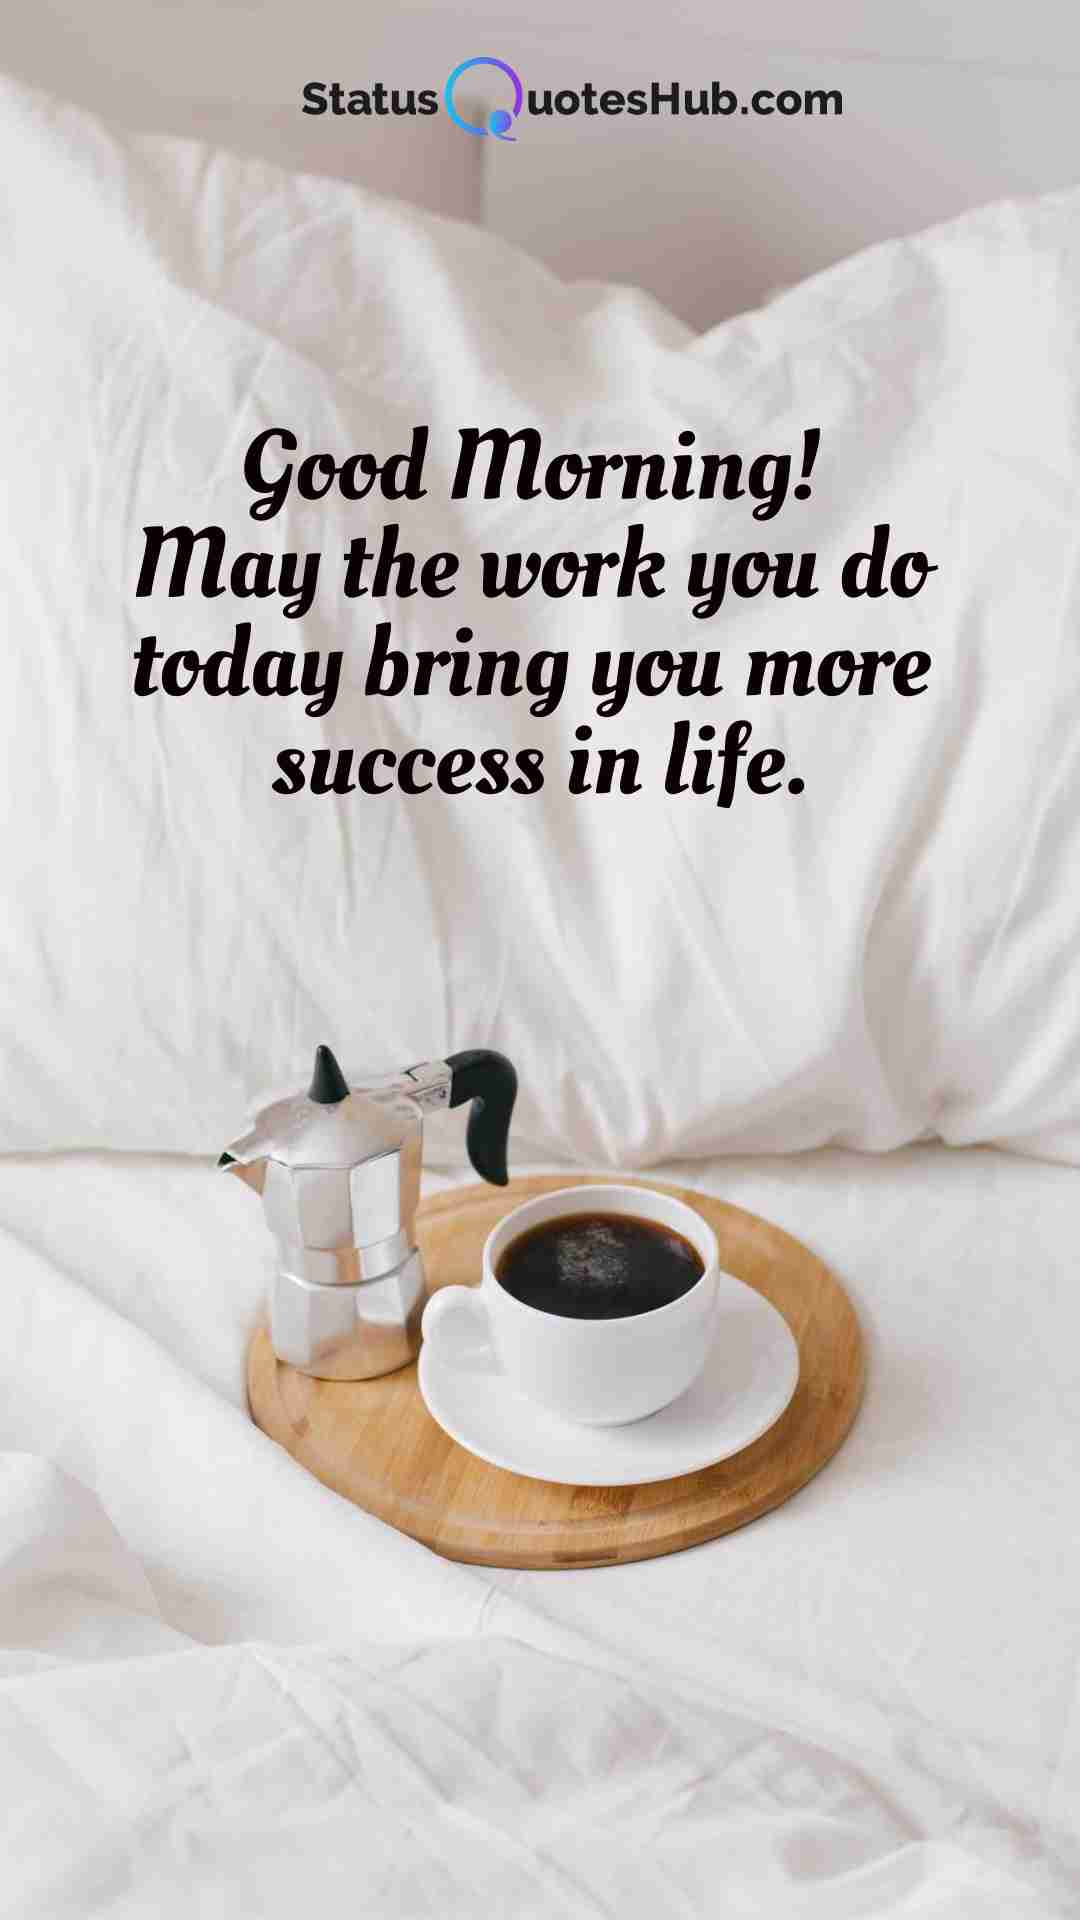 good morning status and quotes for friends